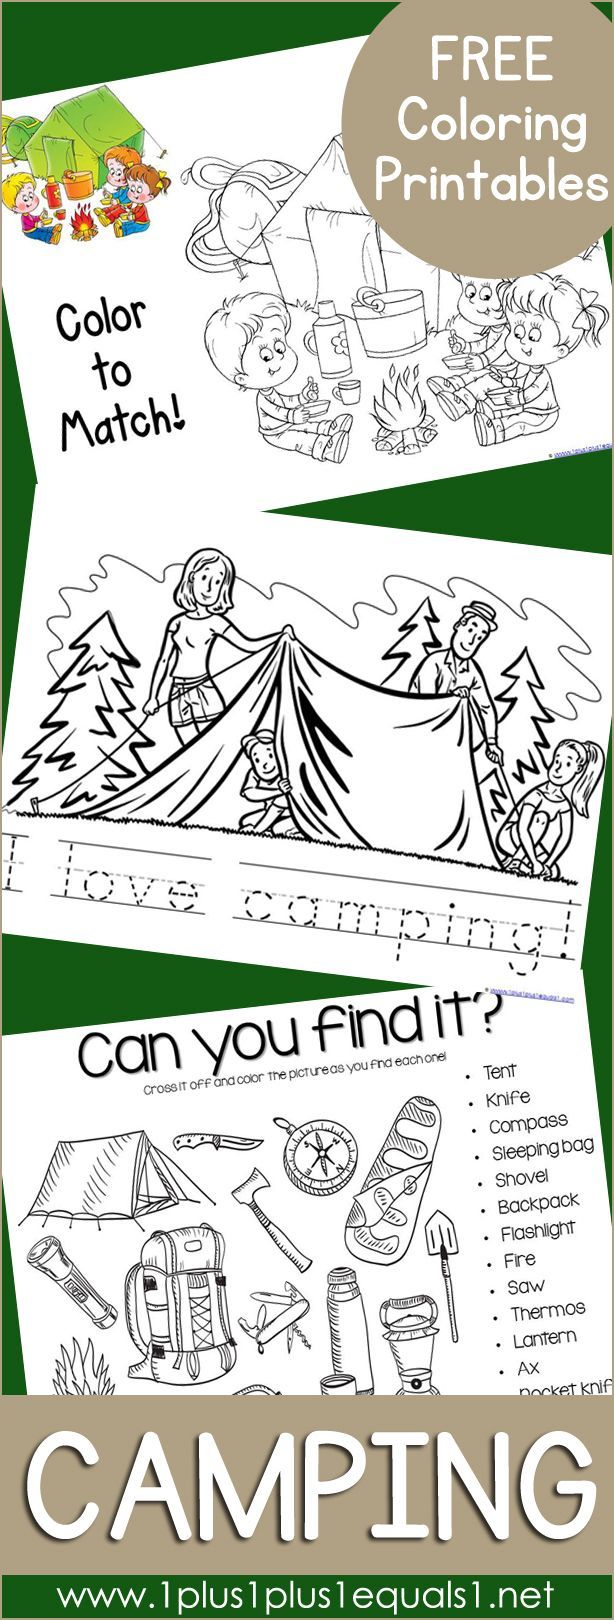 Free Camping Coloring Printables ~ Coloring Activities And